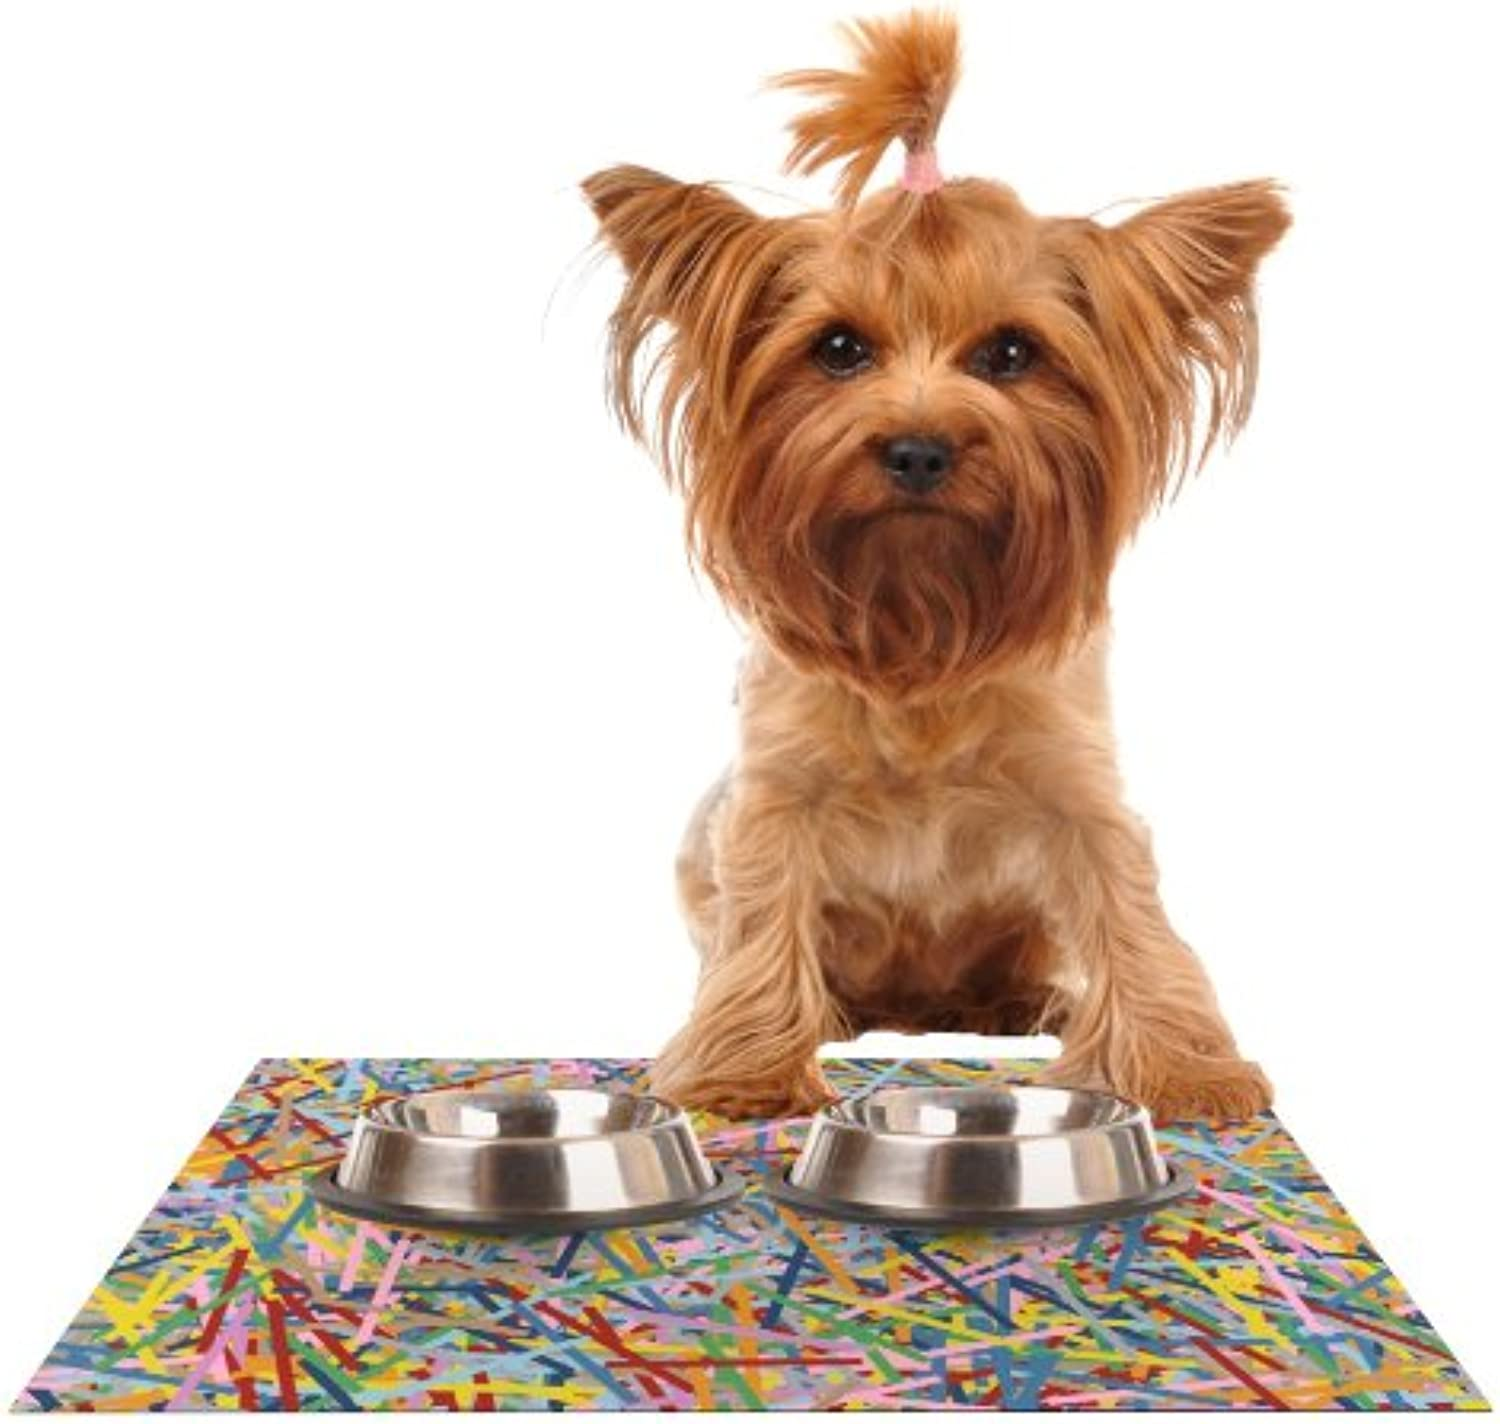 Kess InHouse Project M More Sprinkles  Feeding Mat for Pet Bowl, 24 by 15Inch